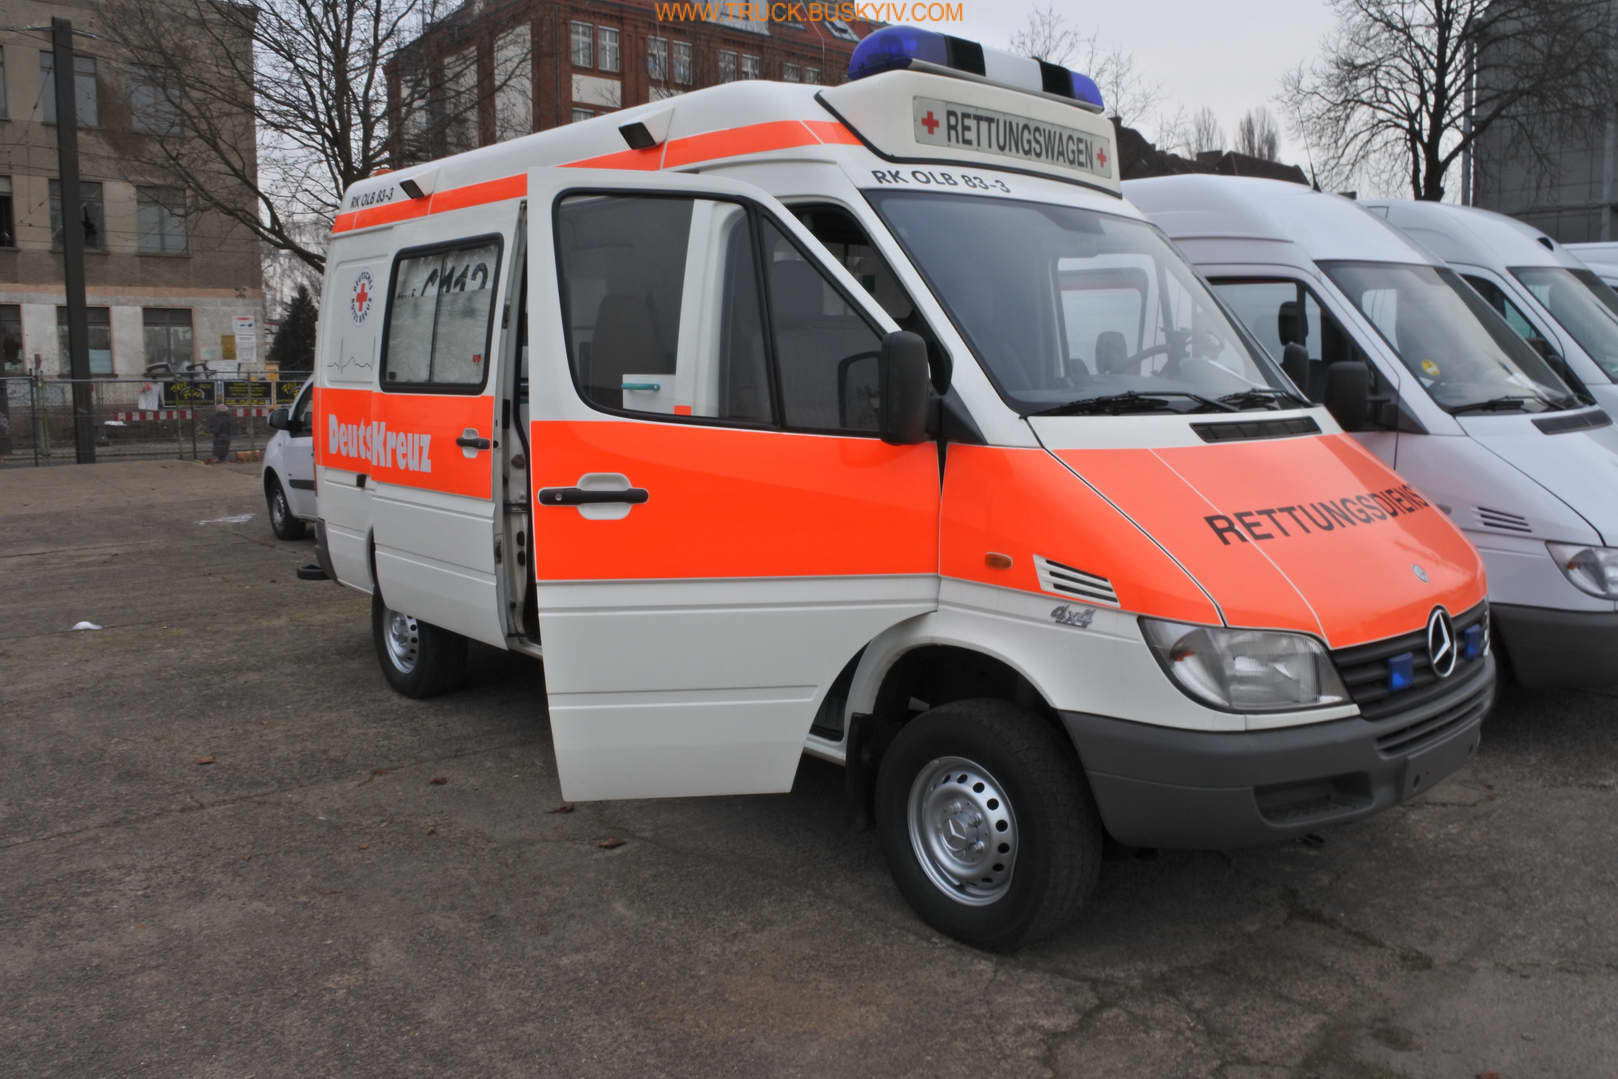 2002_mb_spr316_ambulance_1